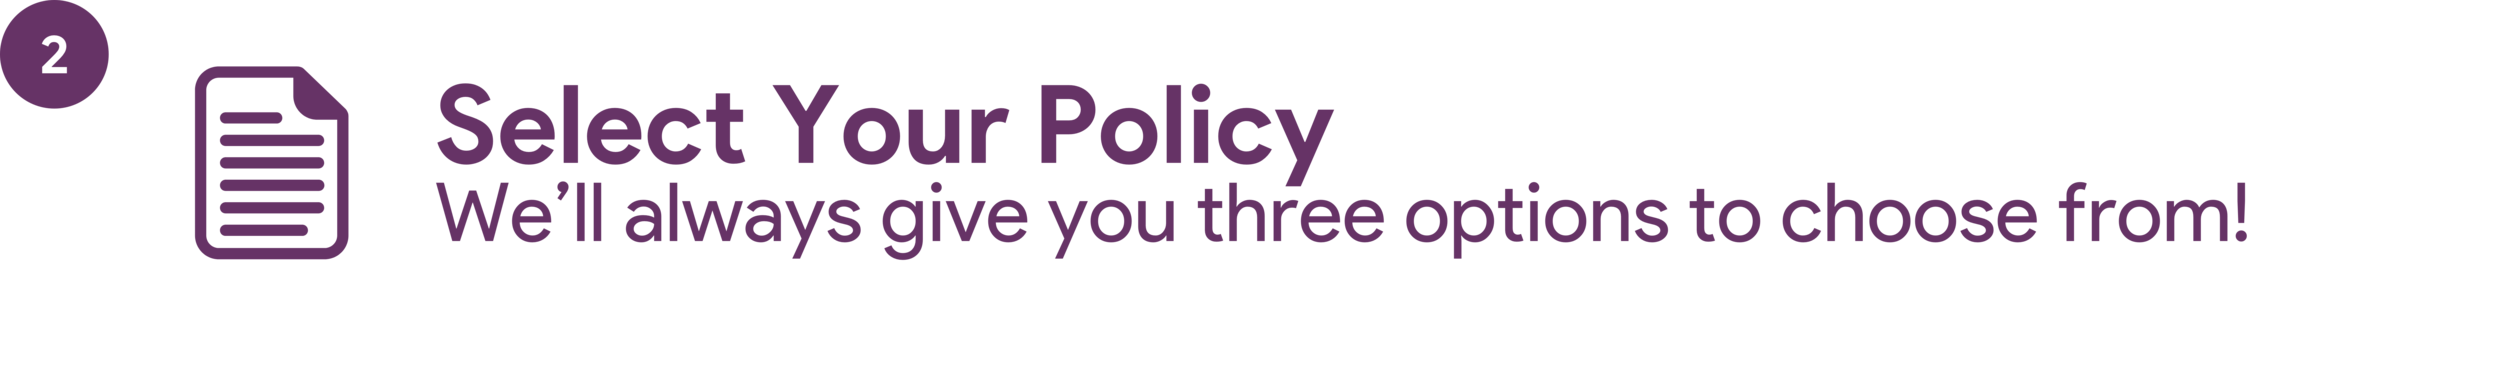 select your policy.png